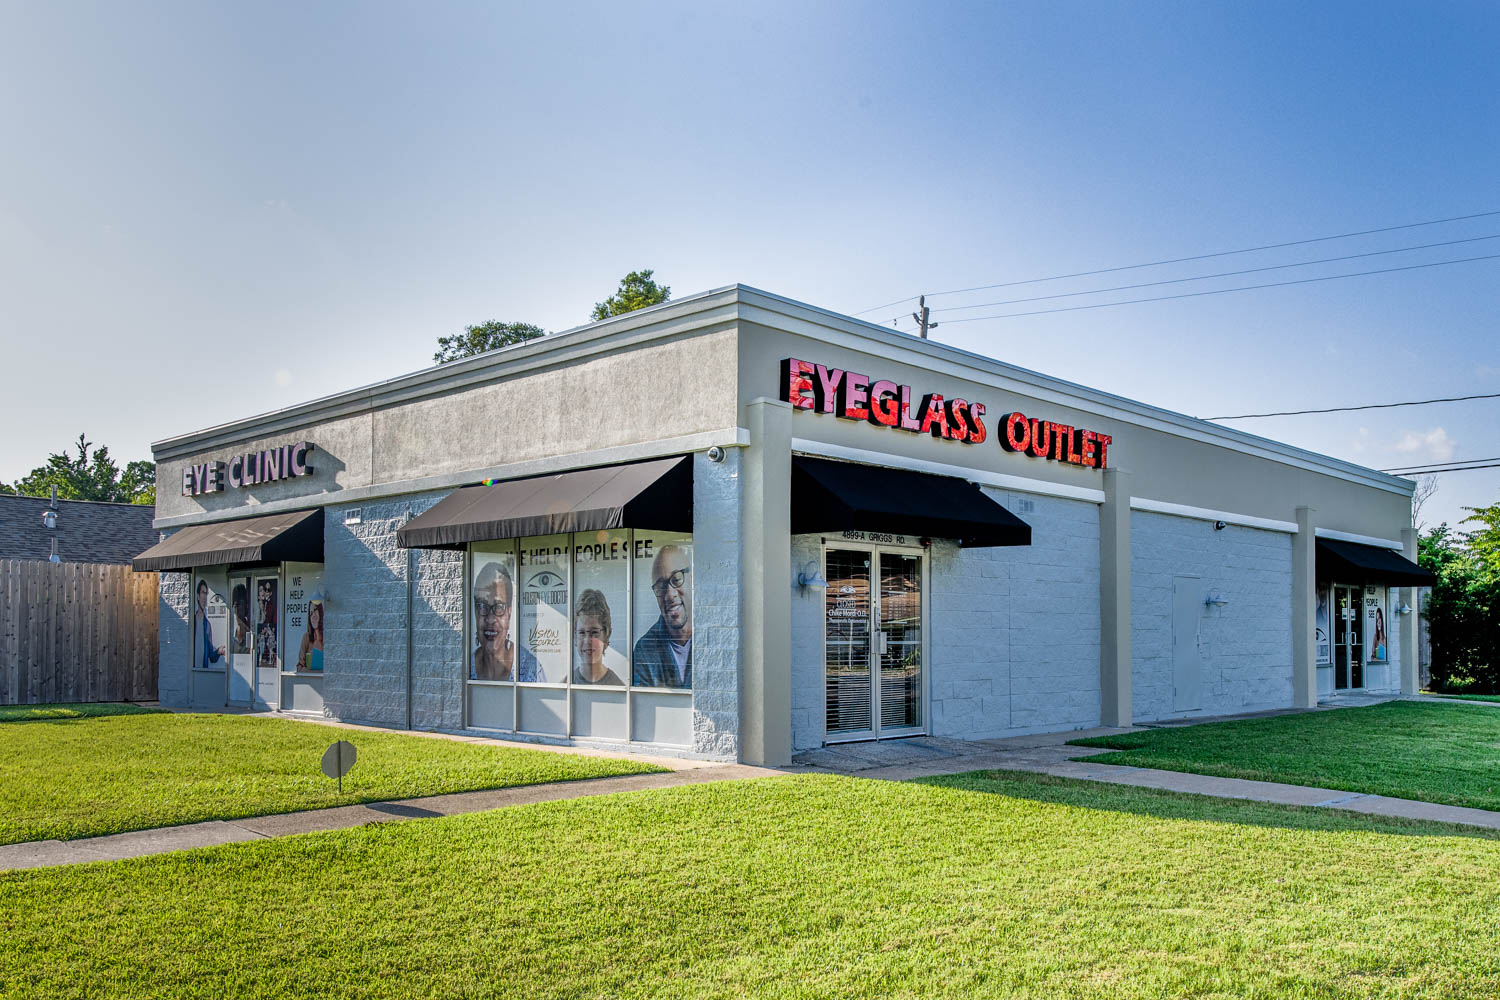 Houston Eye Doctor | Optometrists at 4899 Griggs Rd - Houston TX - Reviews - Photos - Phone Number